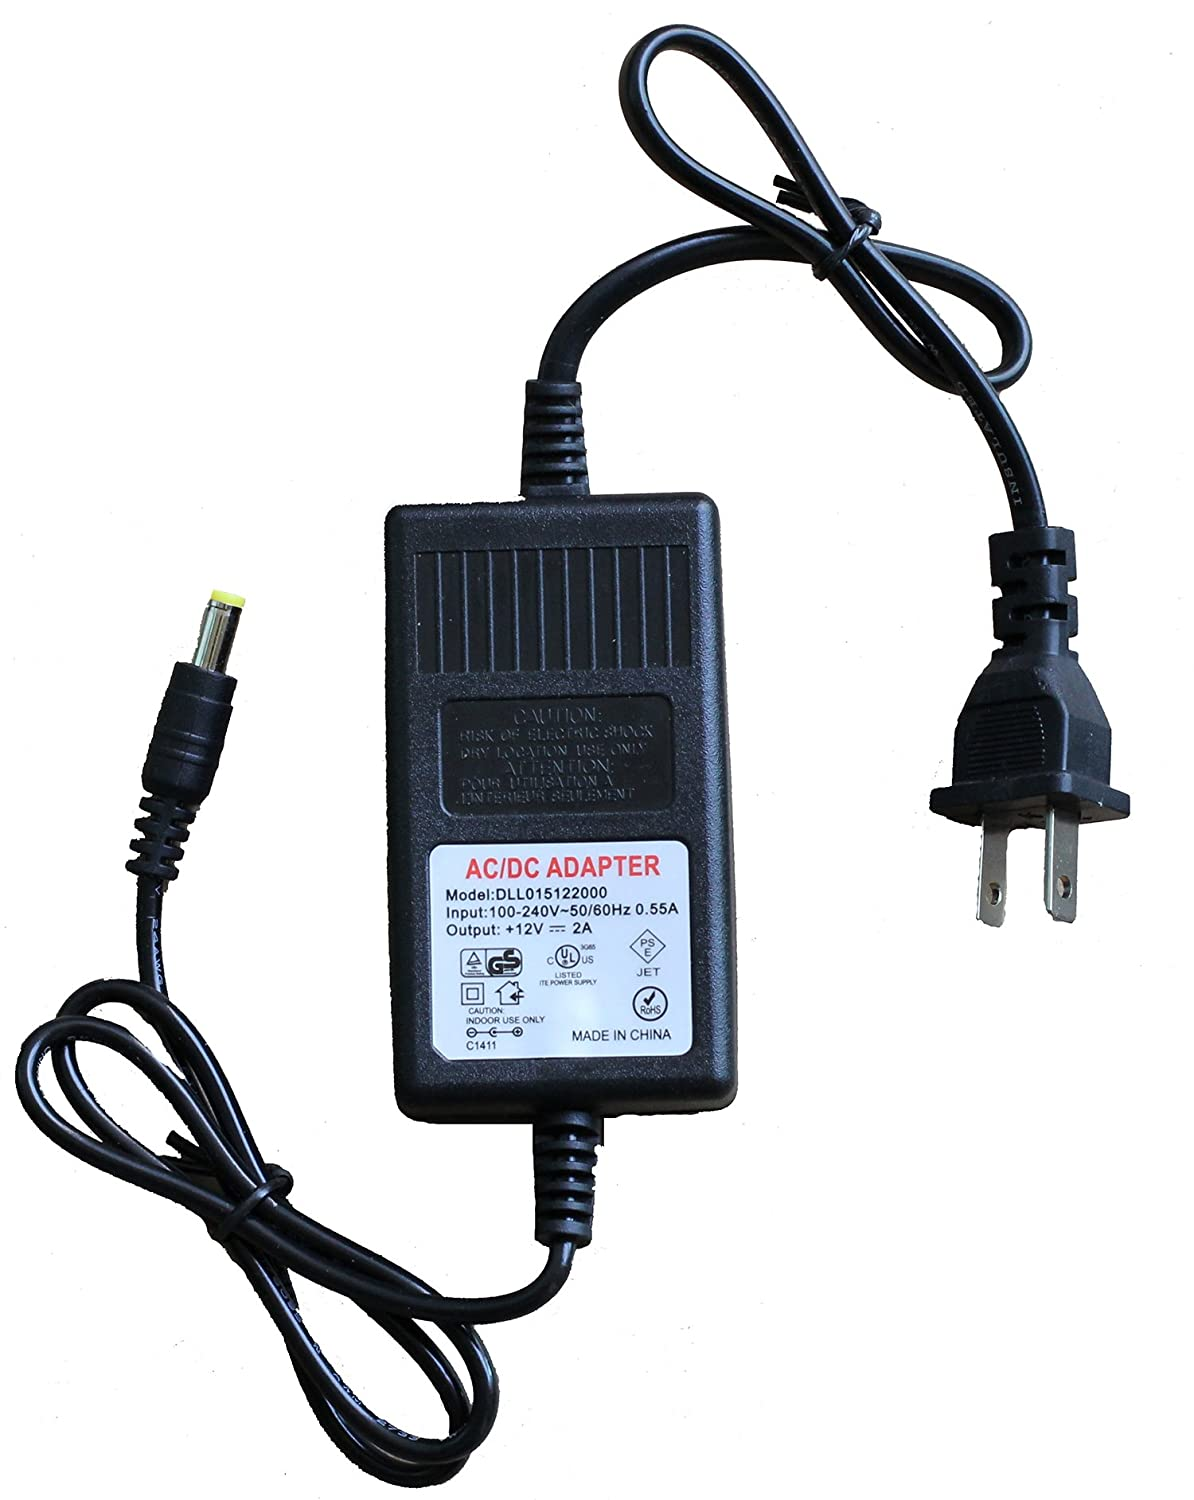 Vanxse Ac to Dc 12v 2000ma 2a Cctv Power Supply Adapter for Home Security  Camera Surveillance System